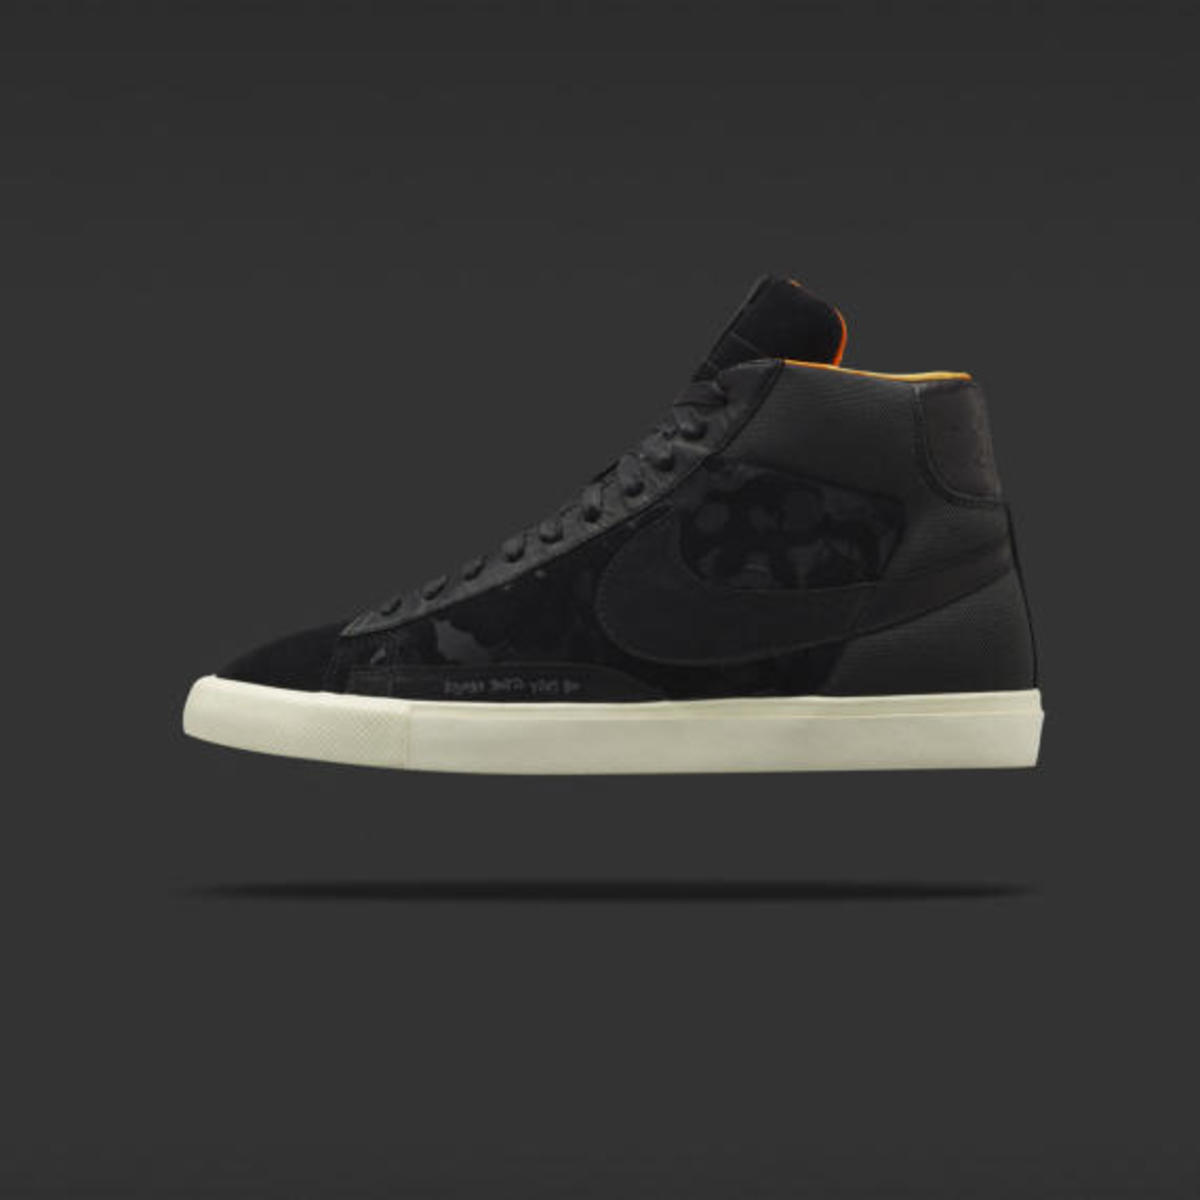 nike-mo-wax-by-james-lavelle-capsule-release-info-06